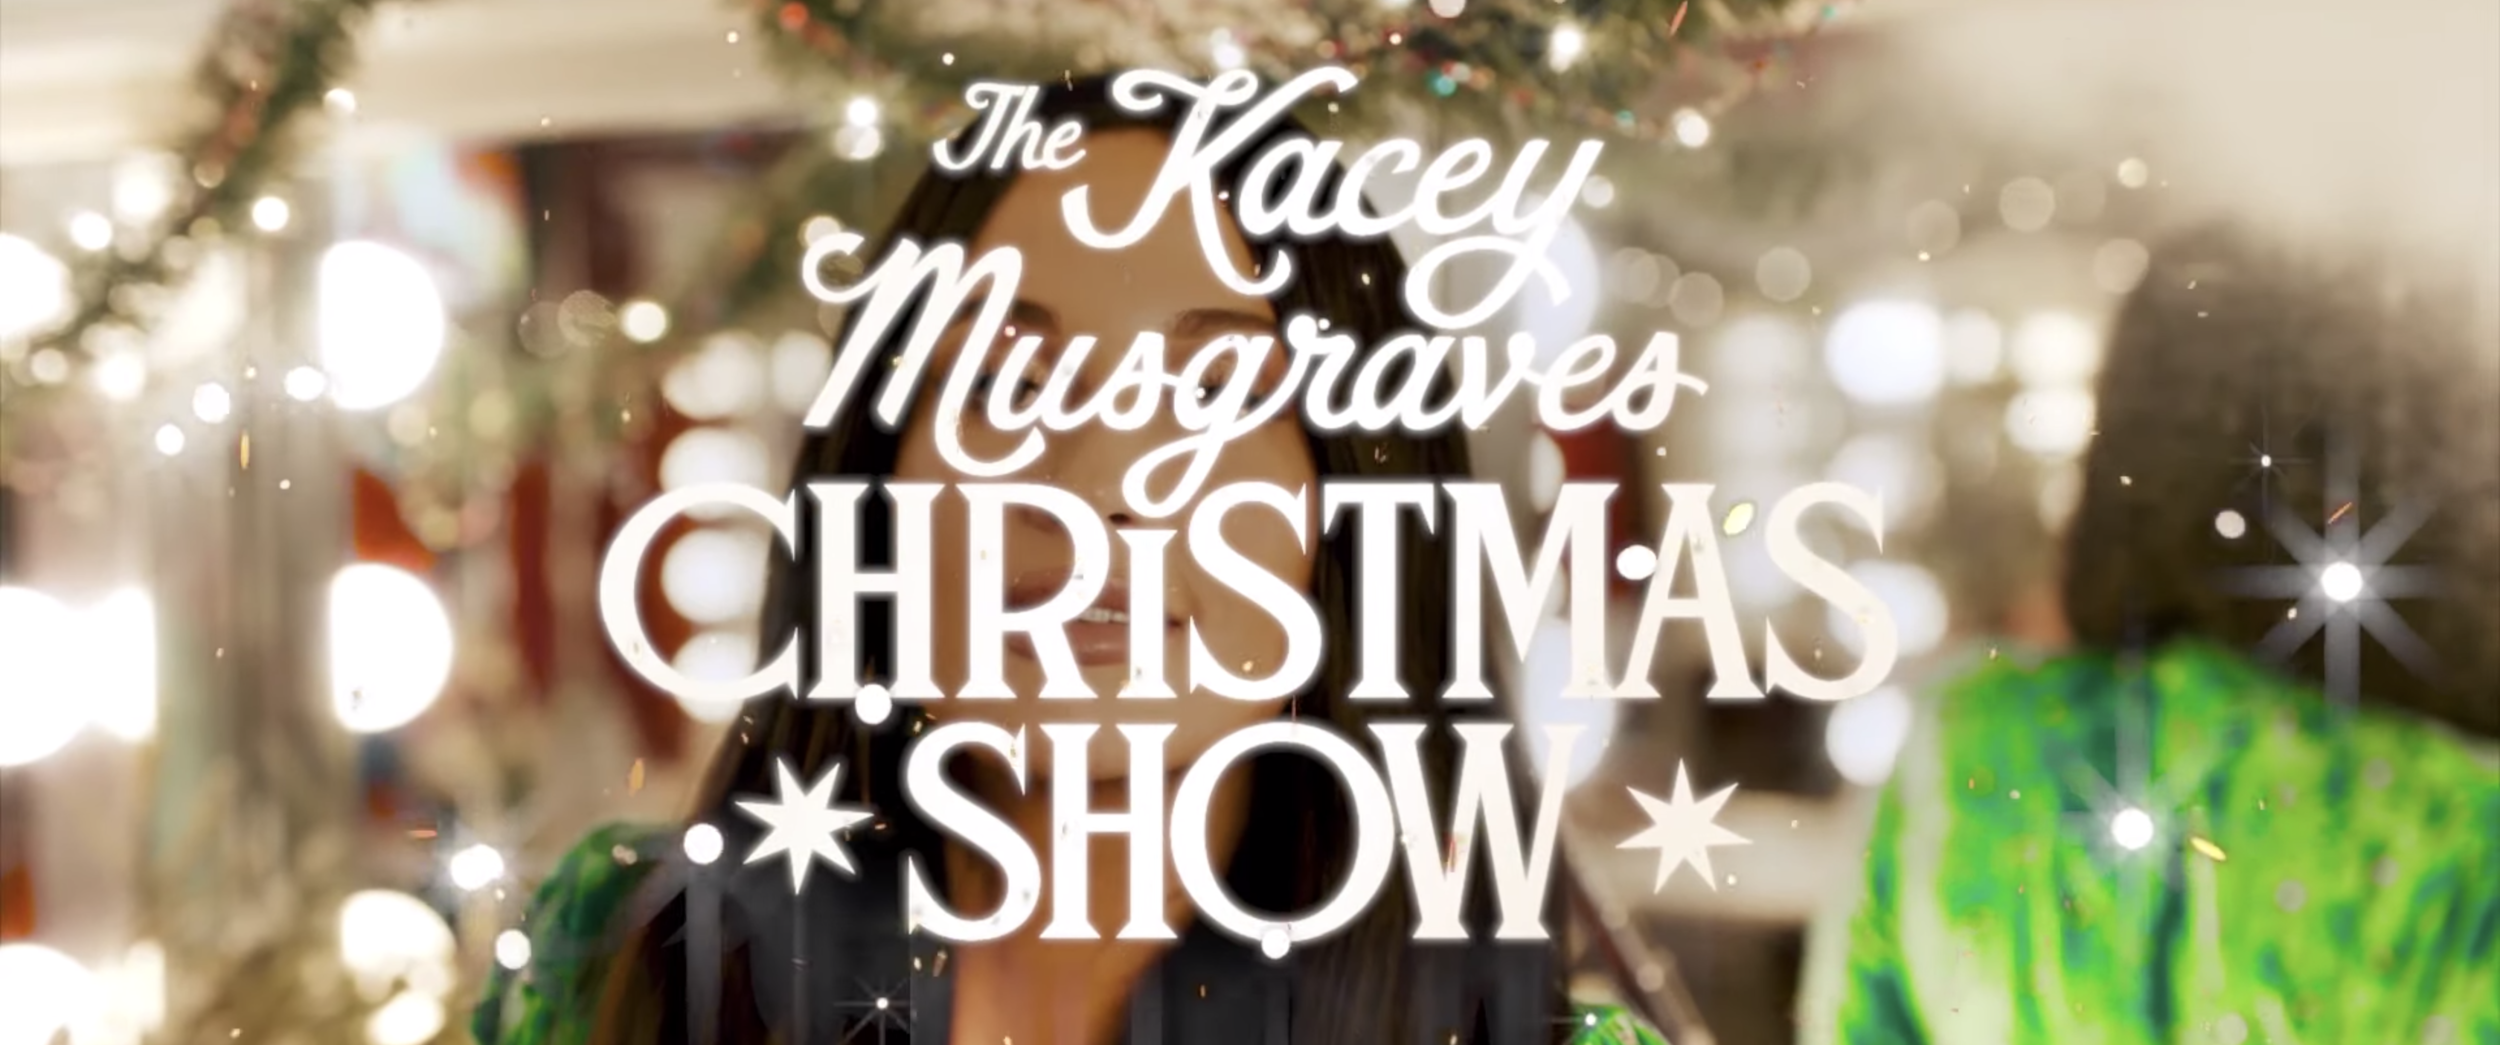 THE KACEY MUSGRAVES CHRISTMAS SHOW TEASER  2019